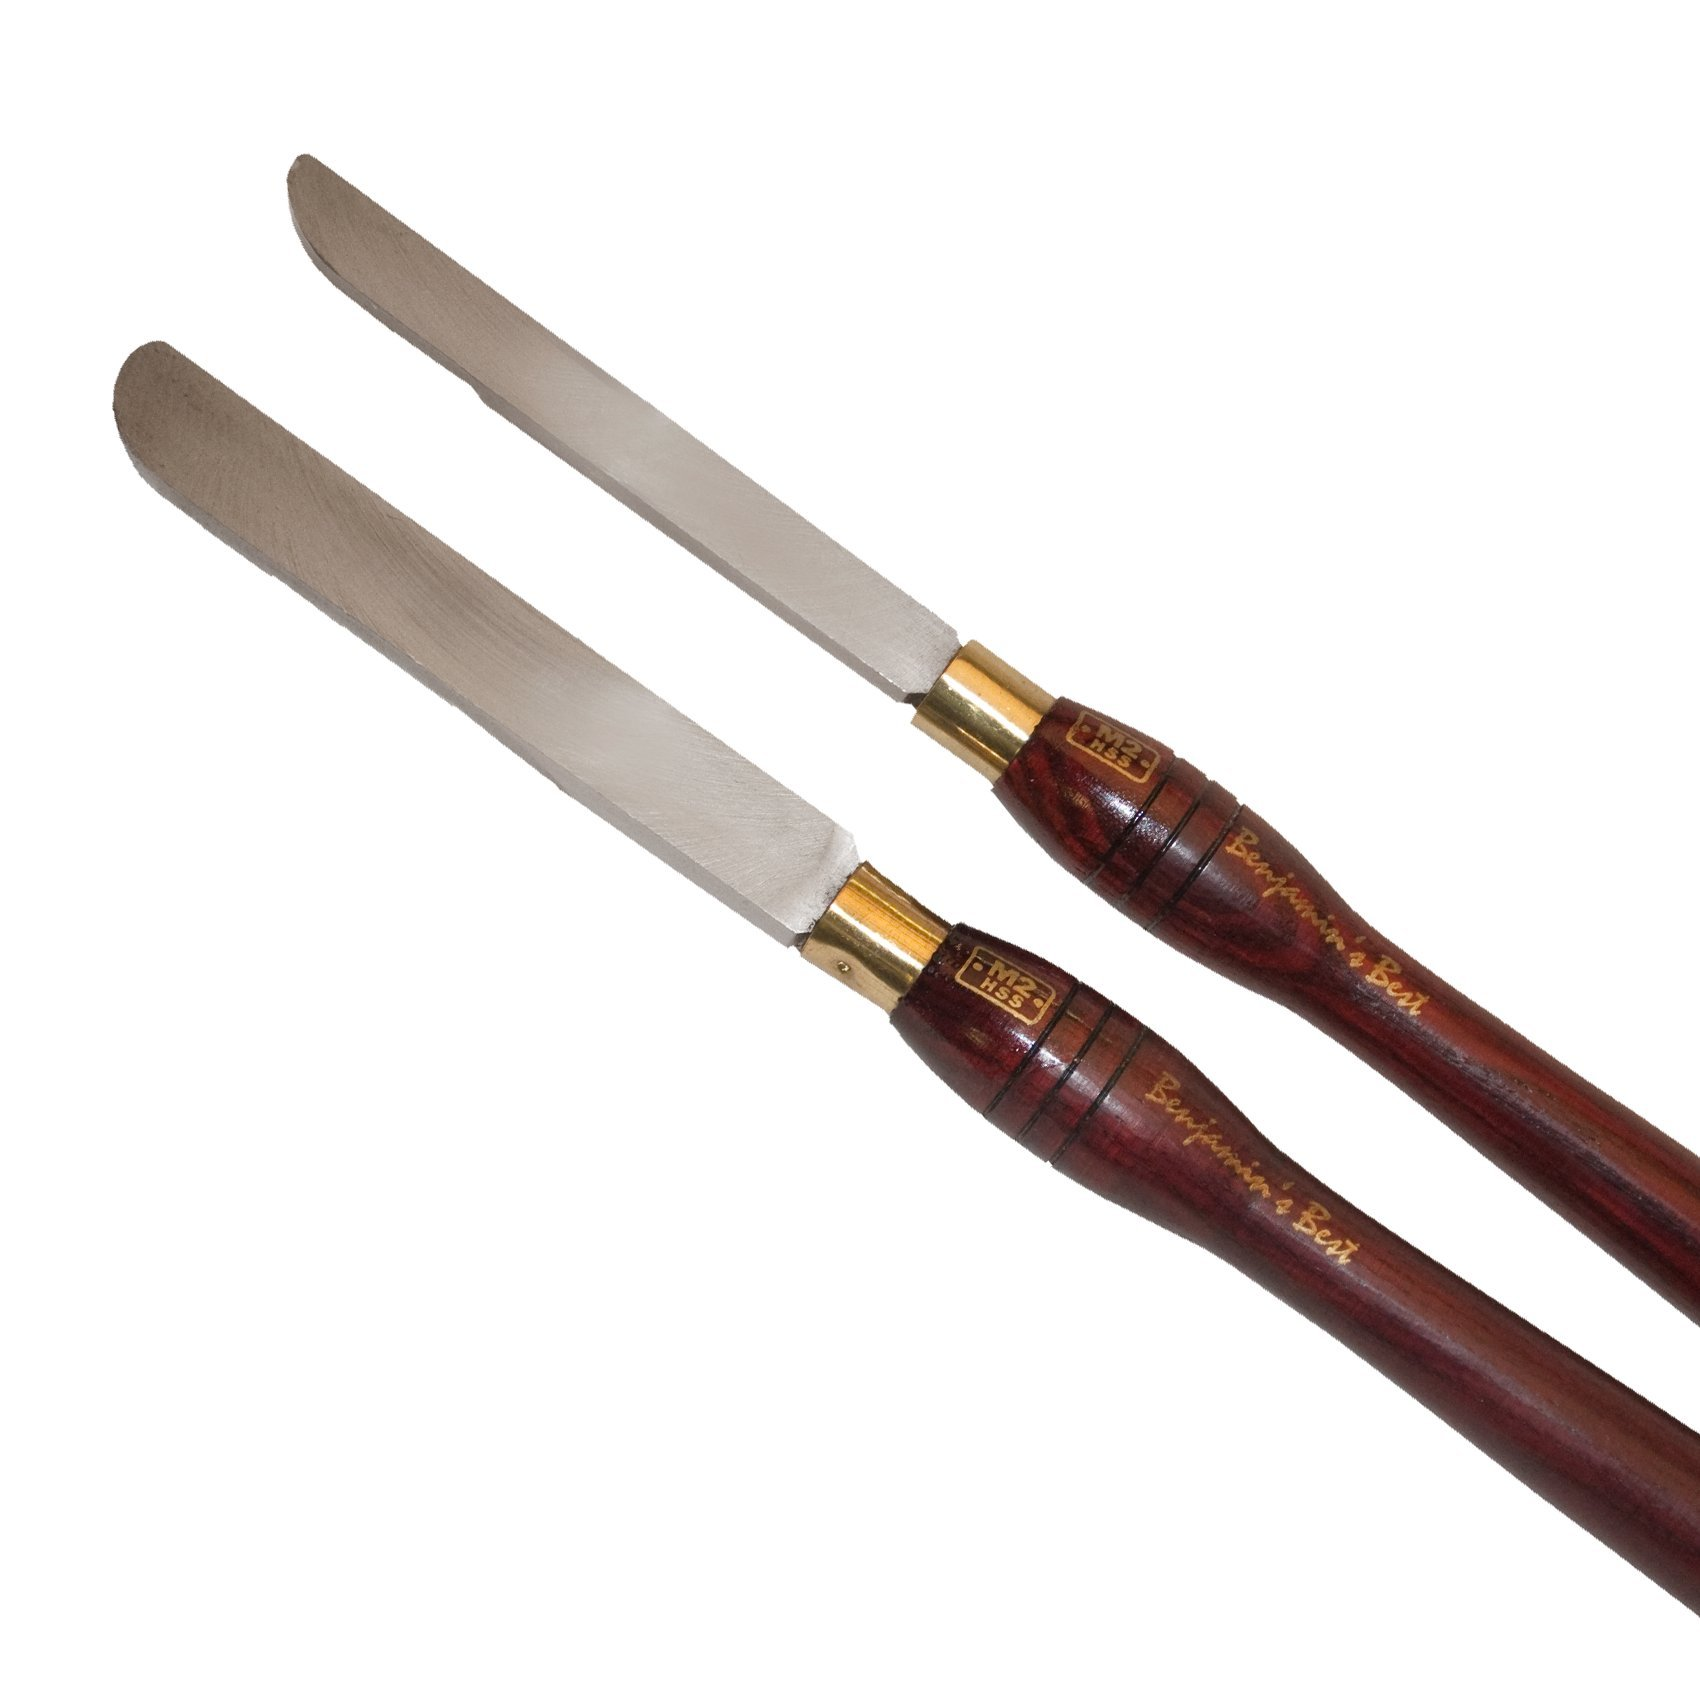 PSI Woodworking LCSIDE2 Round Side Scraper Chisels, 2-Piece Set by PSI Woodworking